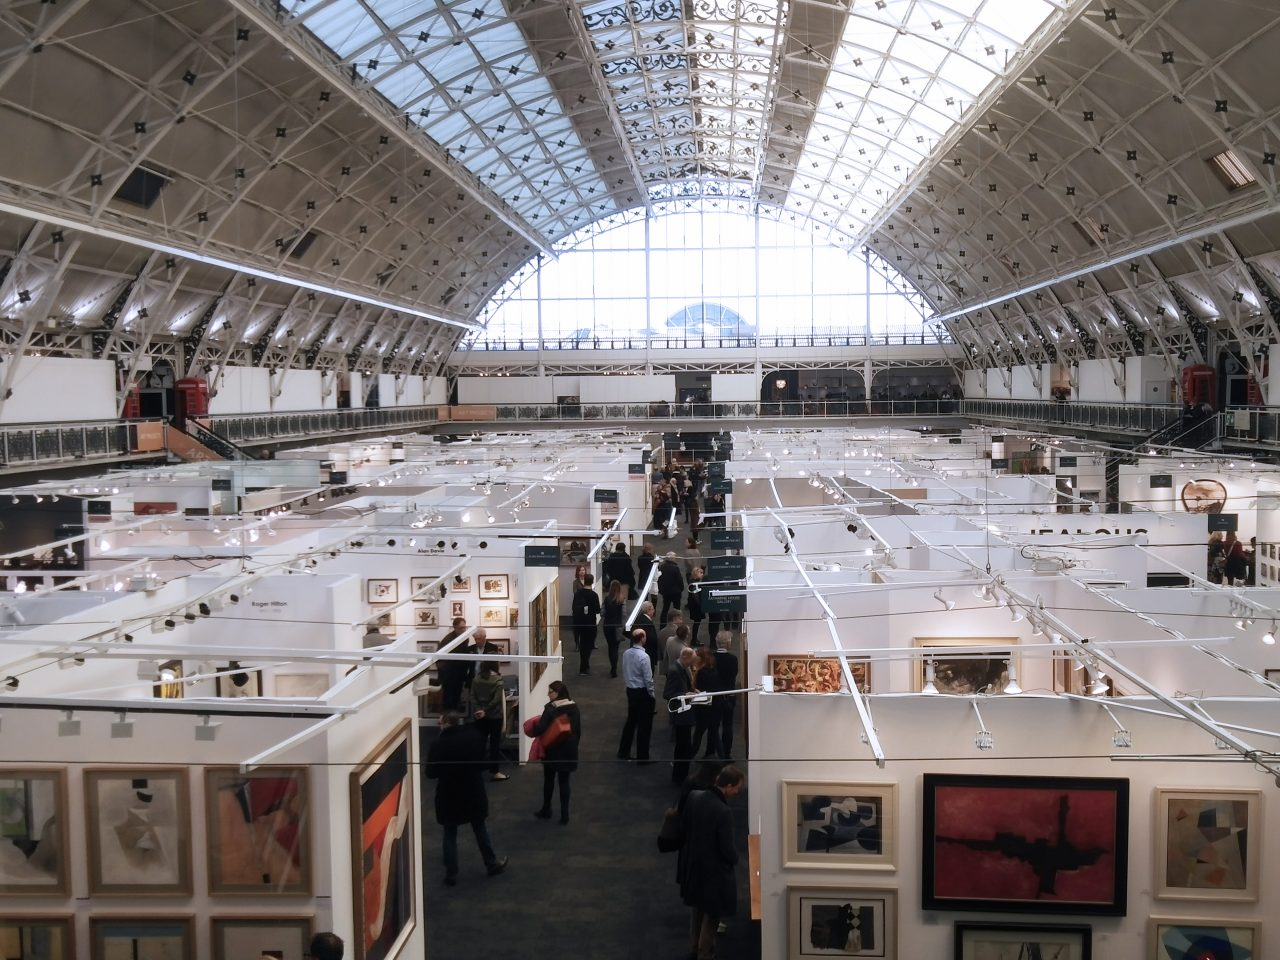 https://www.artsandcollections.com/wp-content/uploads/2019/01/London-Art-Fair-2019-Photo-Chris-Jenkins-1280x960.jpg